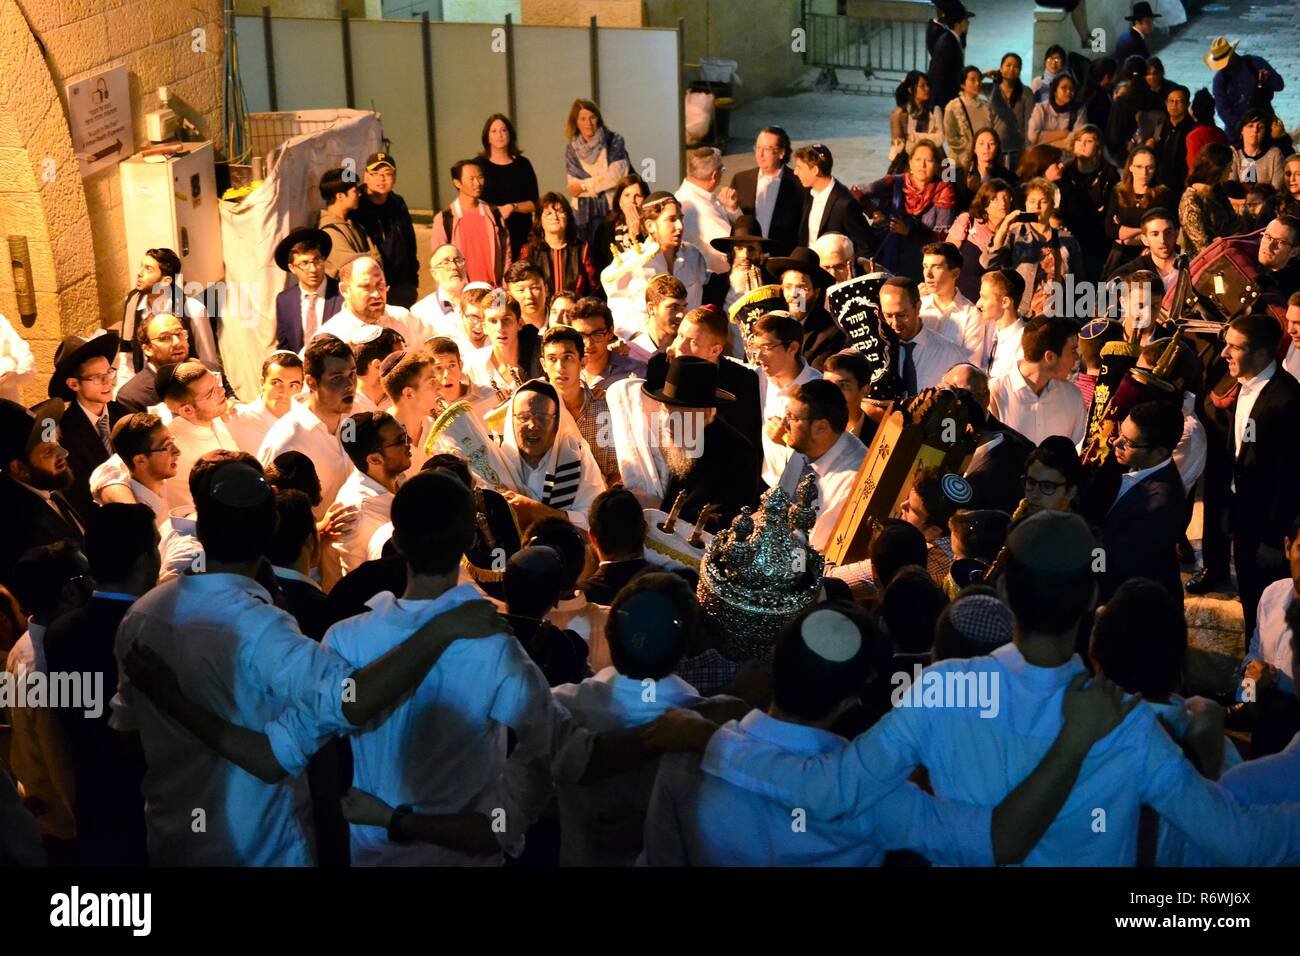 Jewish people celebrating Simchat Torah at western wall in the evening - Stock Image